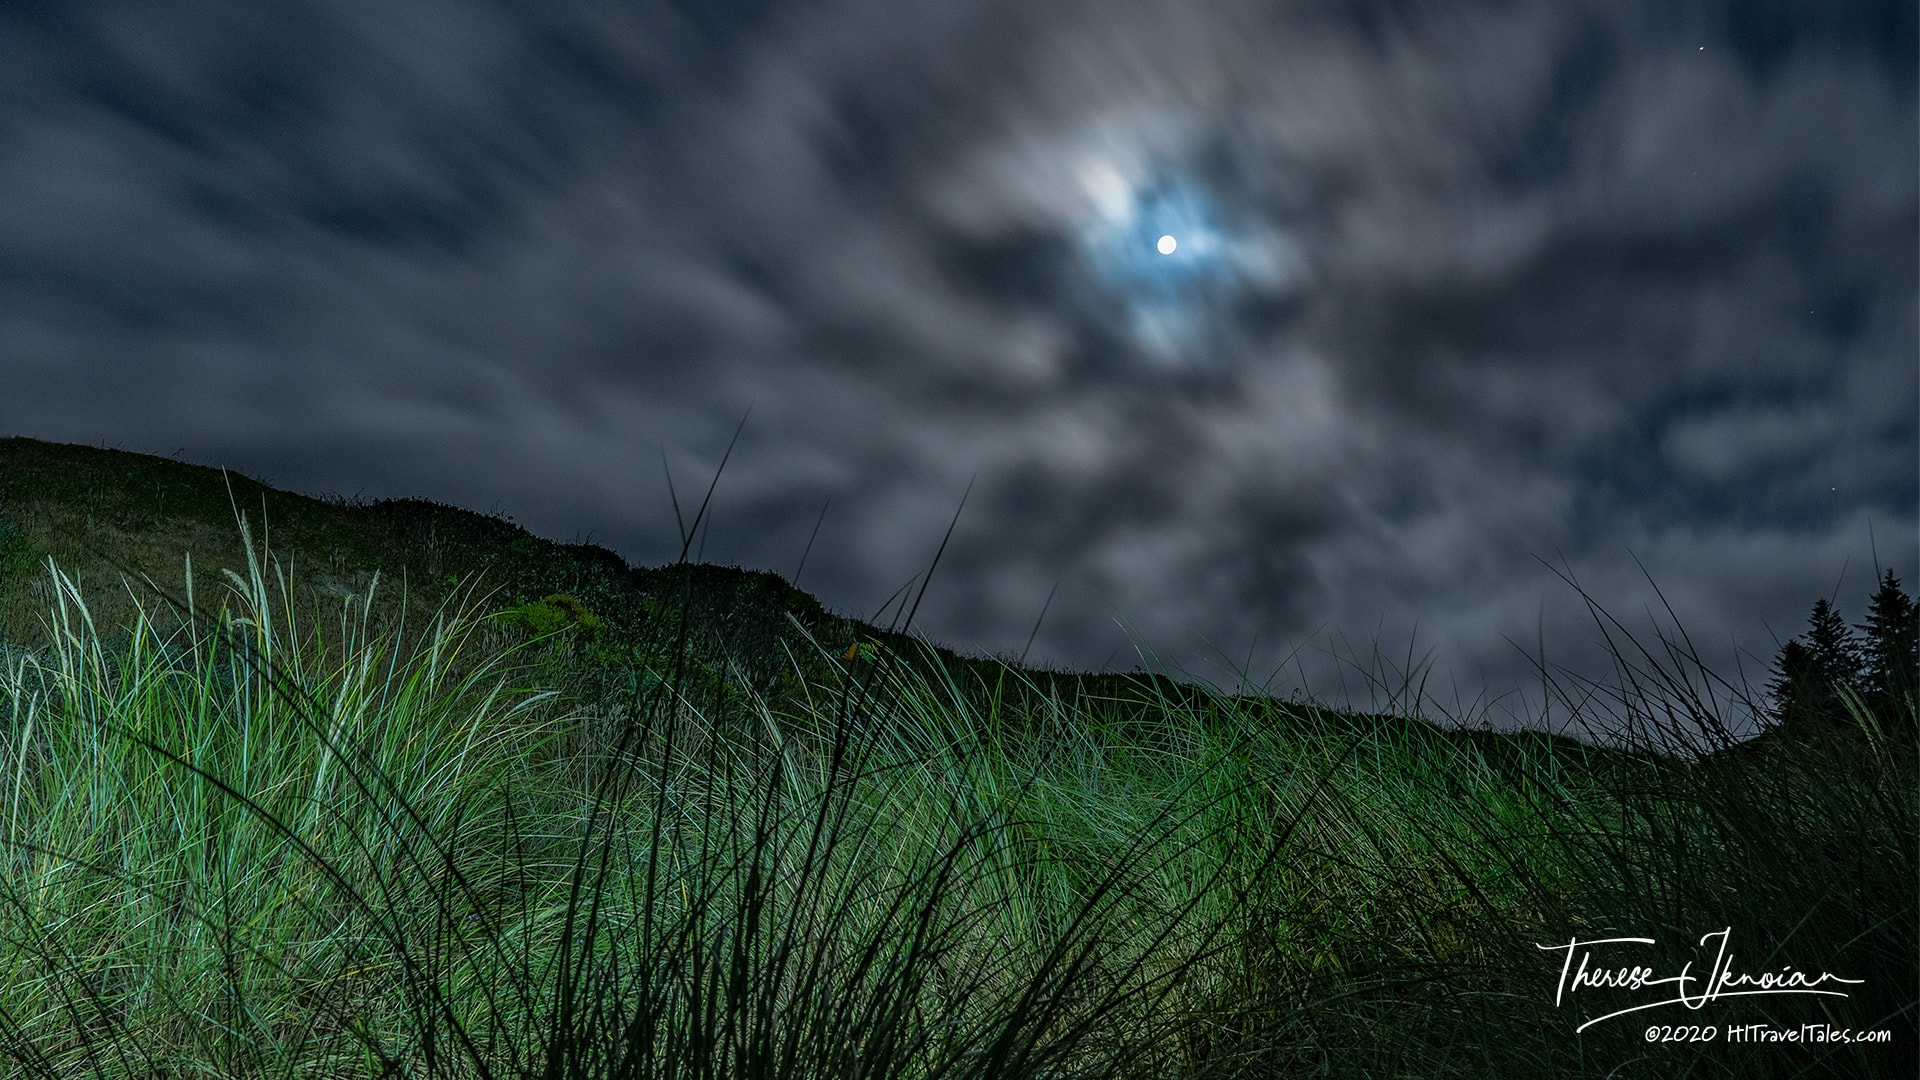 Learning Night Photography - Grasses Bathed In Full Moonlight